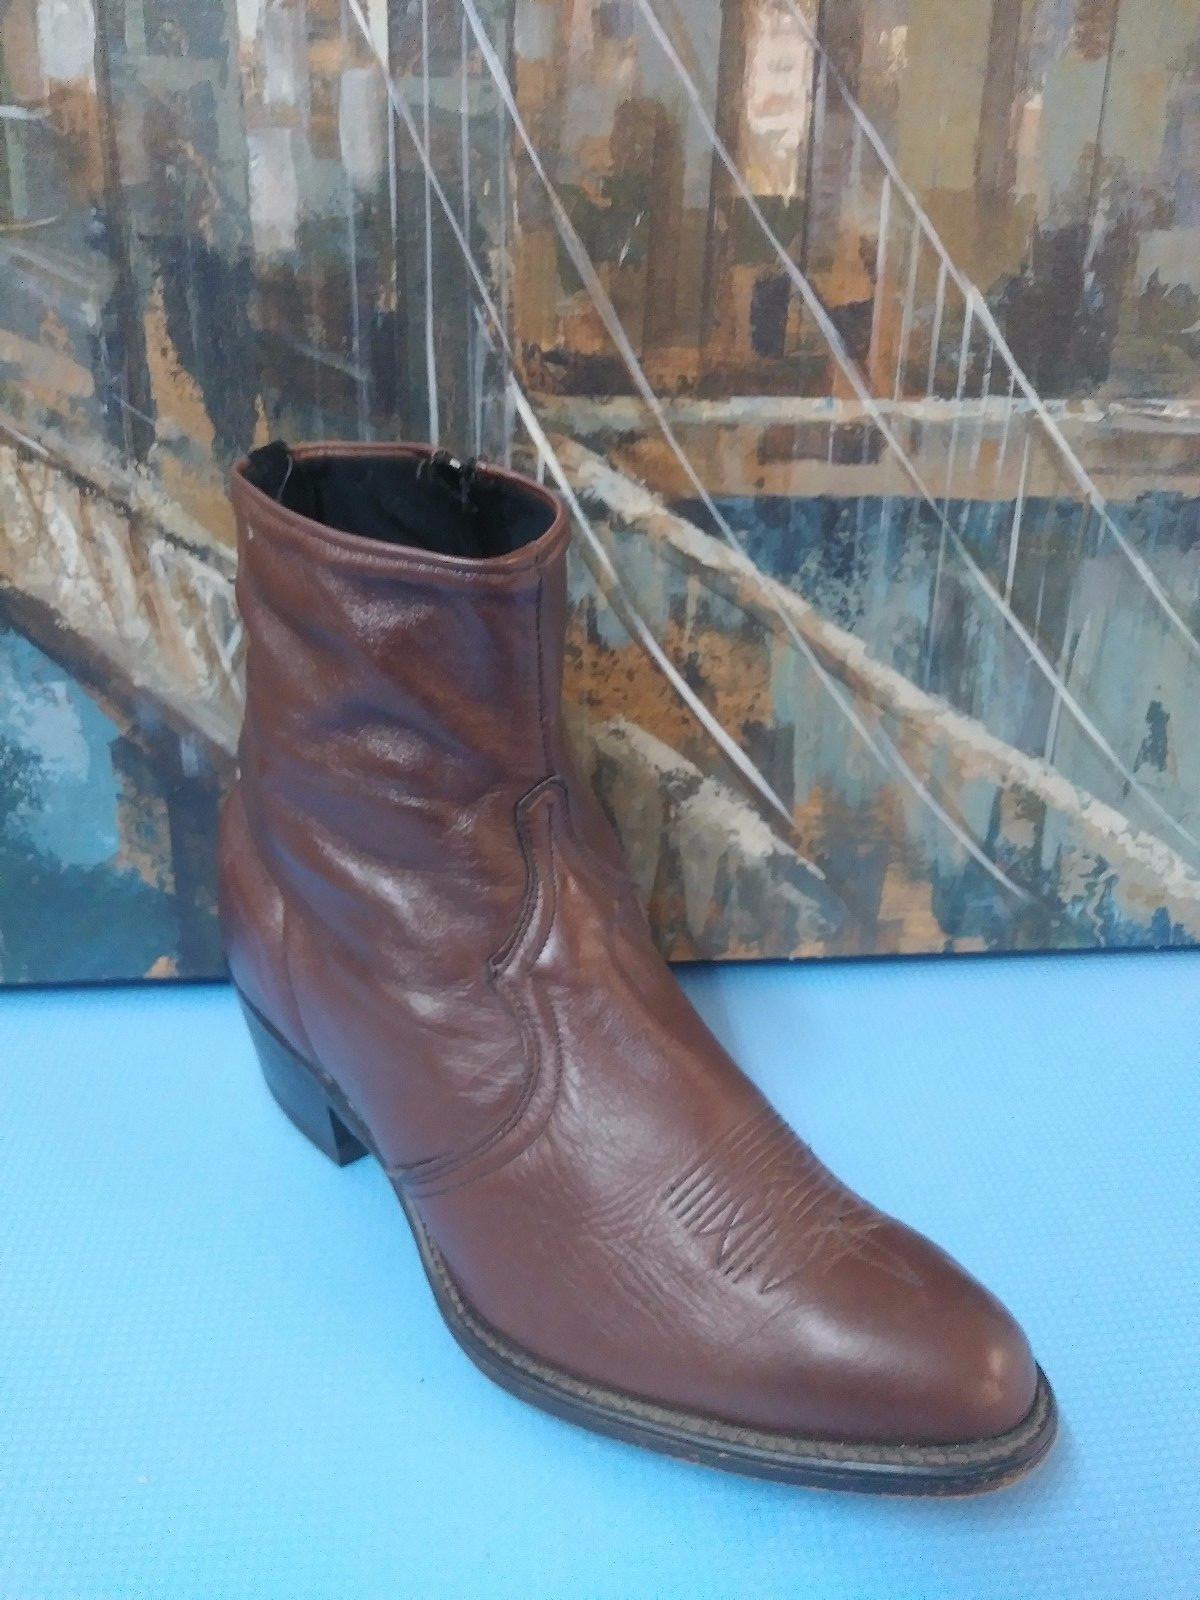 Uomo Pelle 6084 Zip Dress Ankle Stivali Uomo Size 9 EE Brown